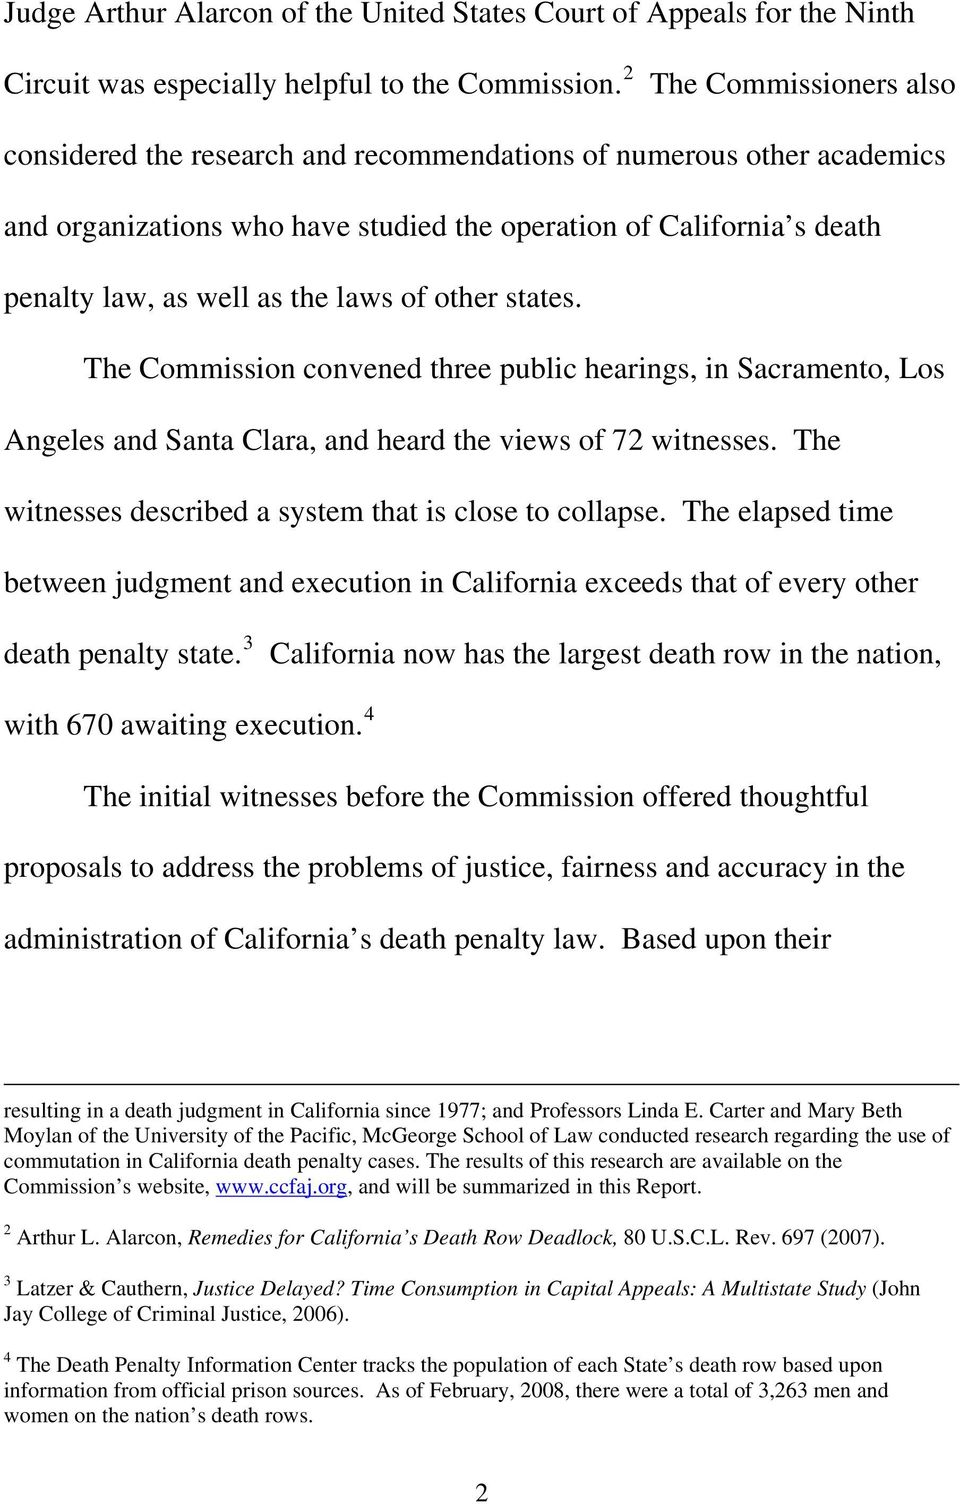 laws of other states. The Commission convened three public hearings, in Sacramento, Los Angeles and Santa Clara, and heard the views of 72 witnesses.